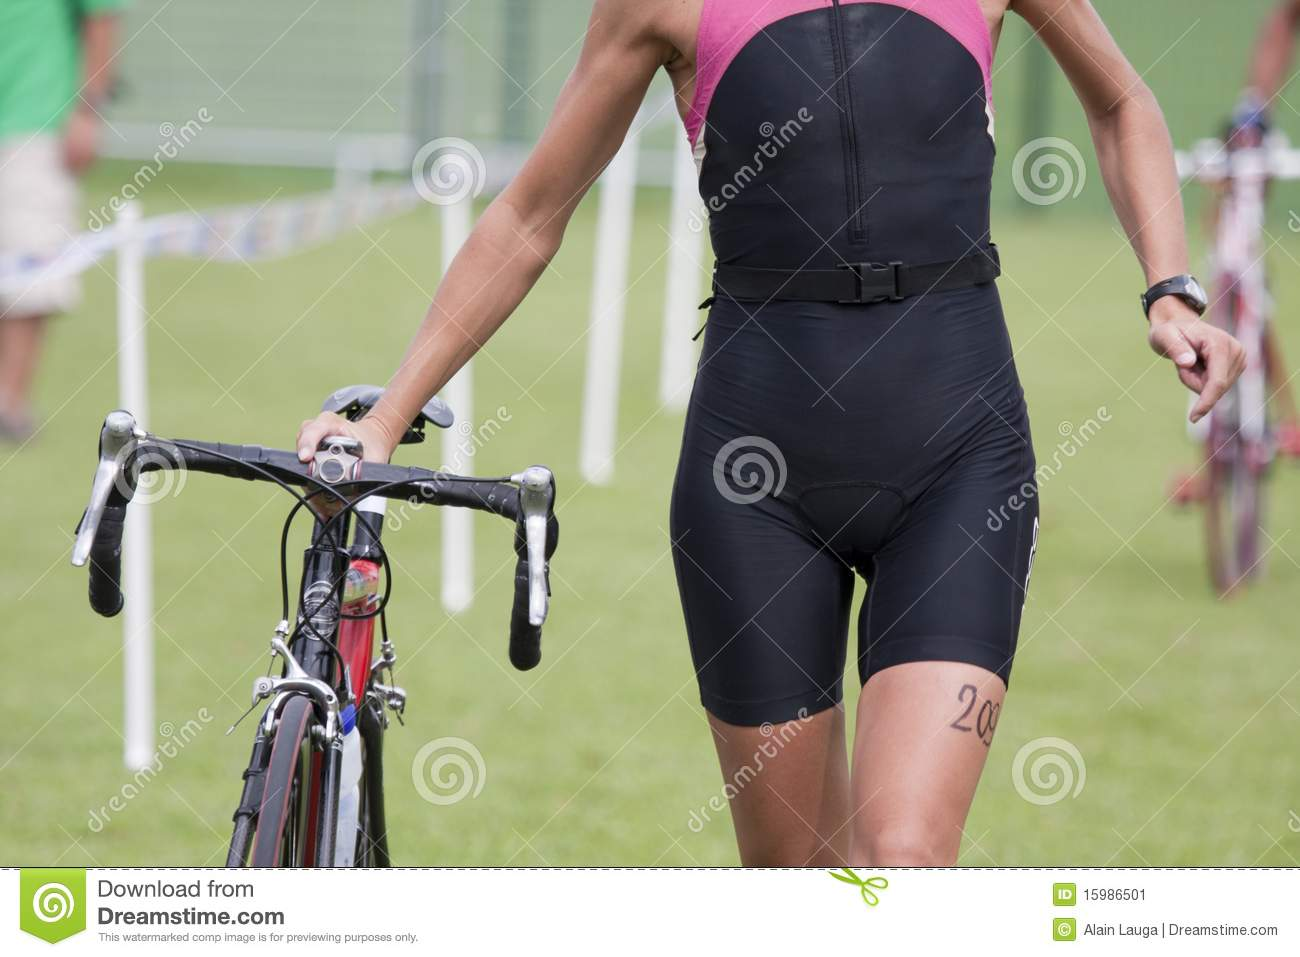 Wijfje triathlete